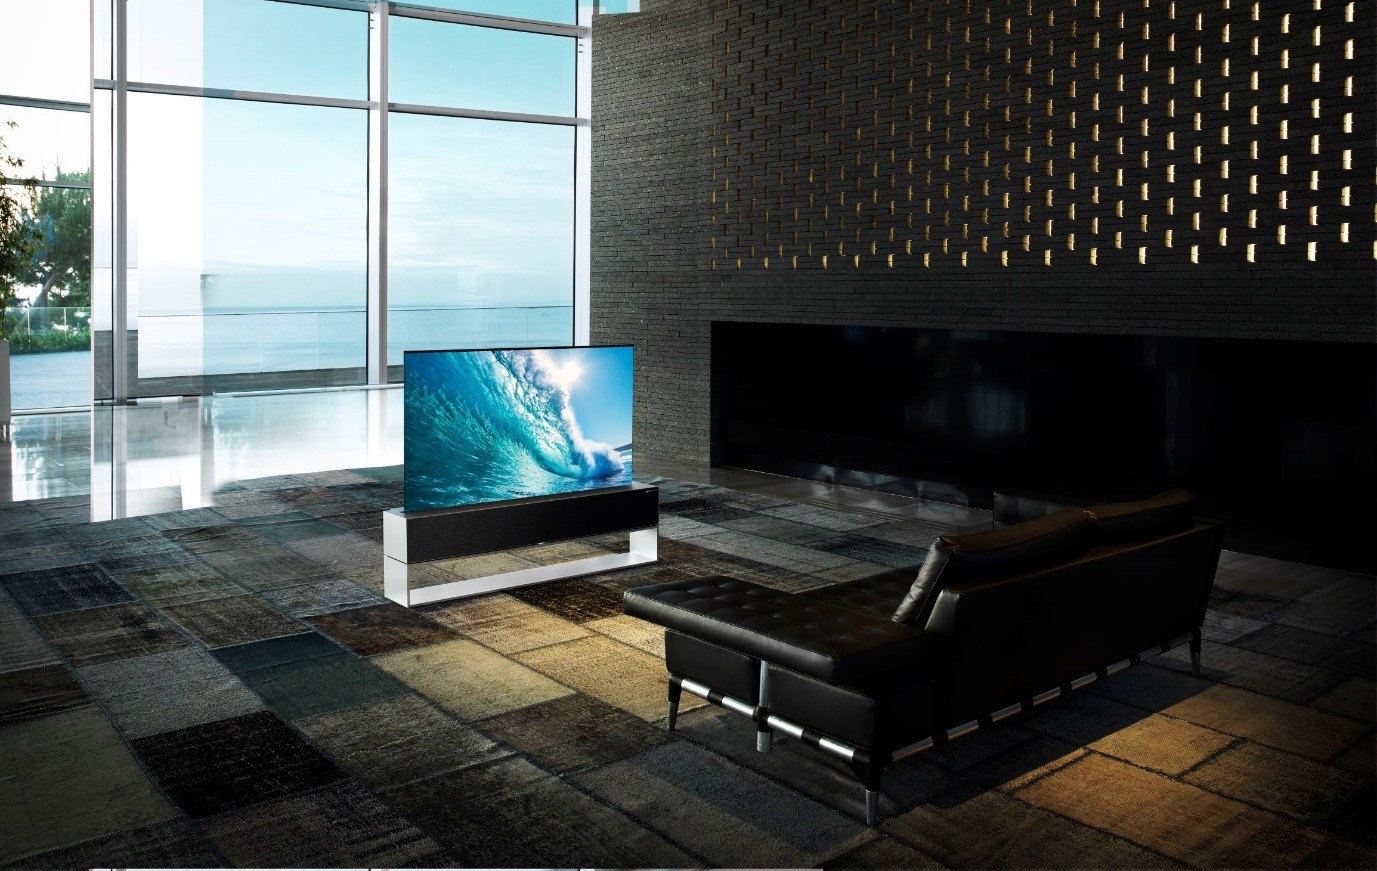 LG SIGNATURE OLED R positioned in a modern living space while vividly displaying crashing waves